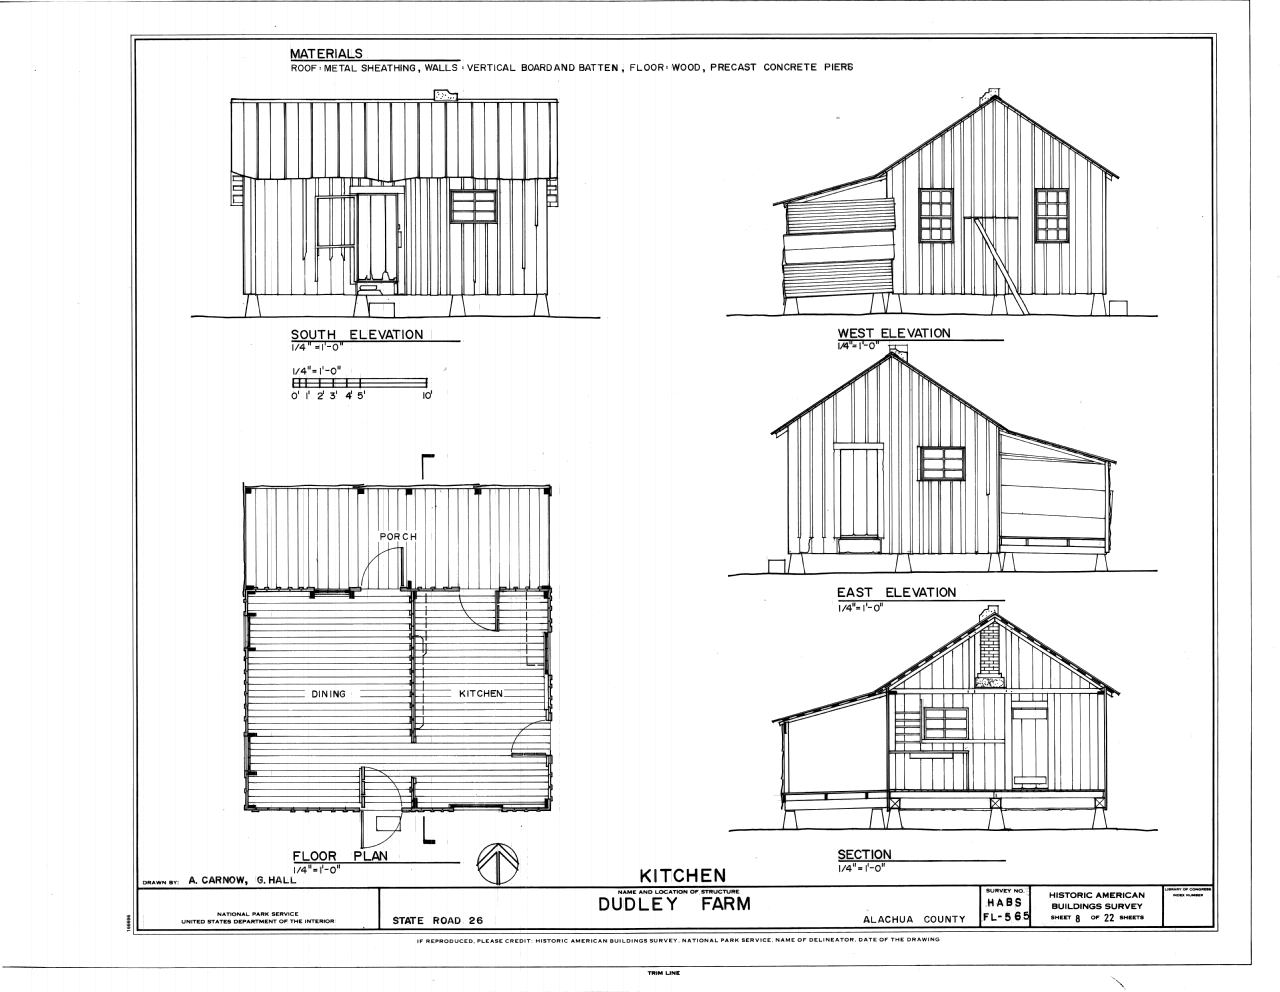 Building Elevation Plan : File kitchen elevations floor plan and section dudley